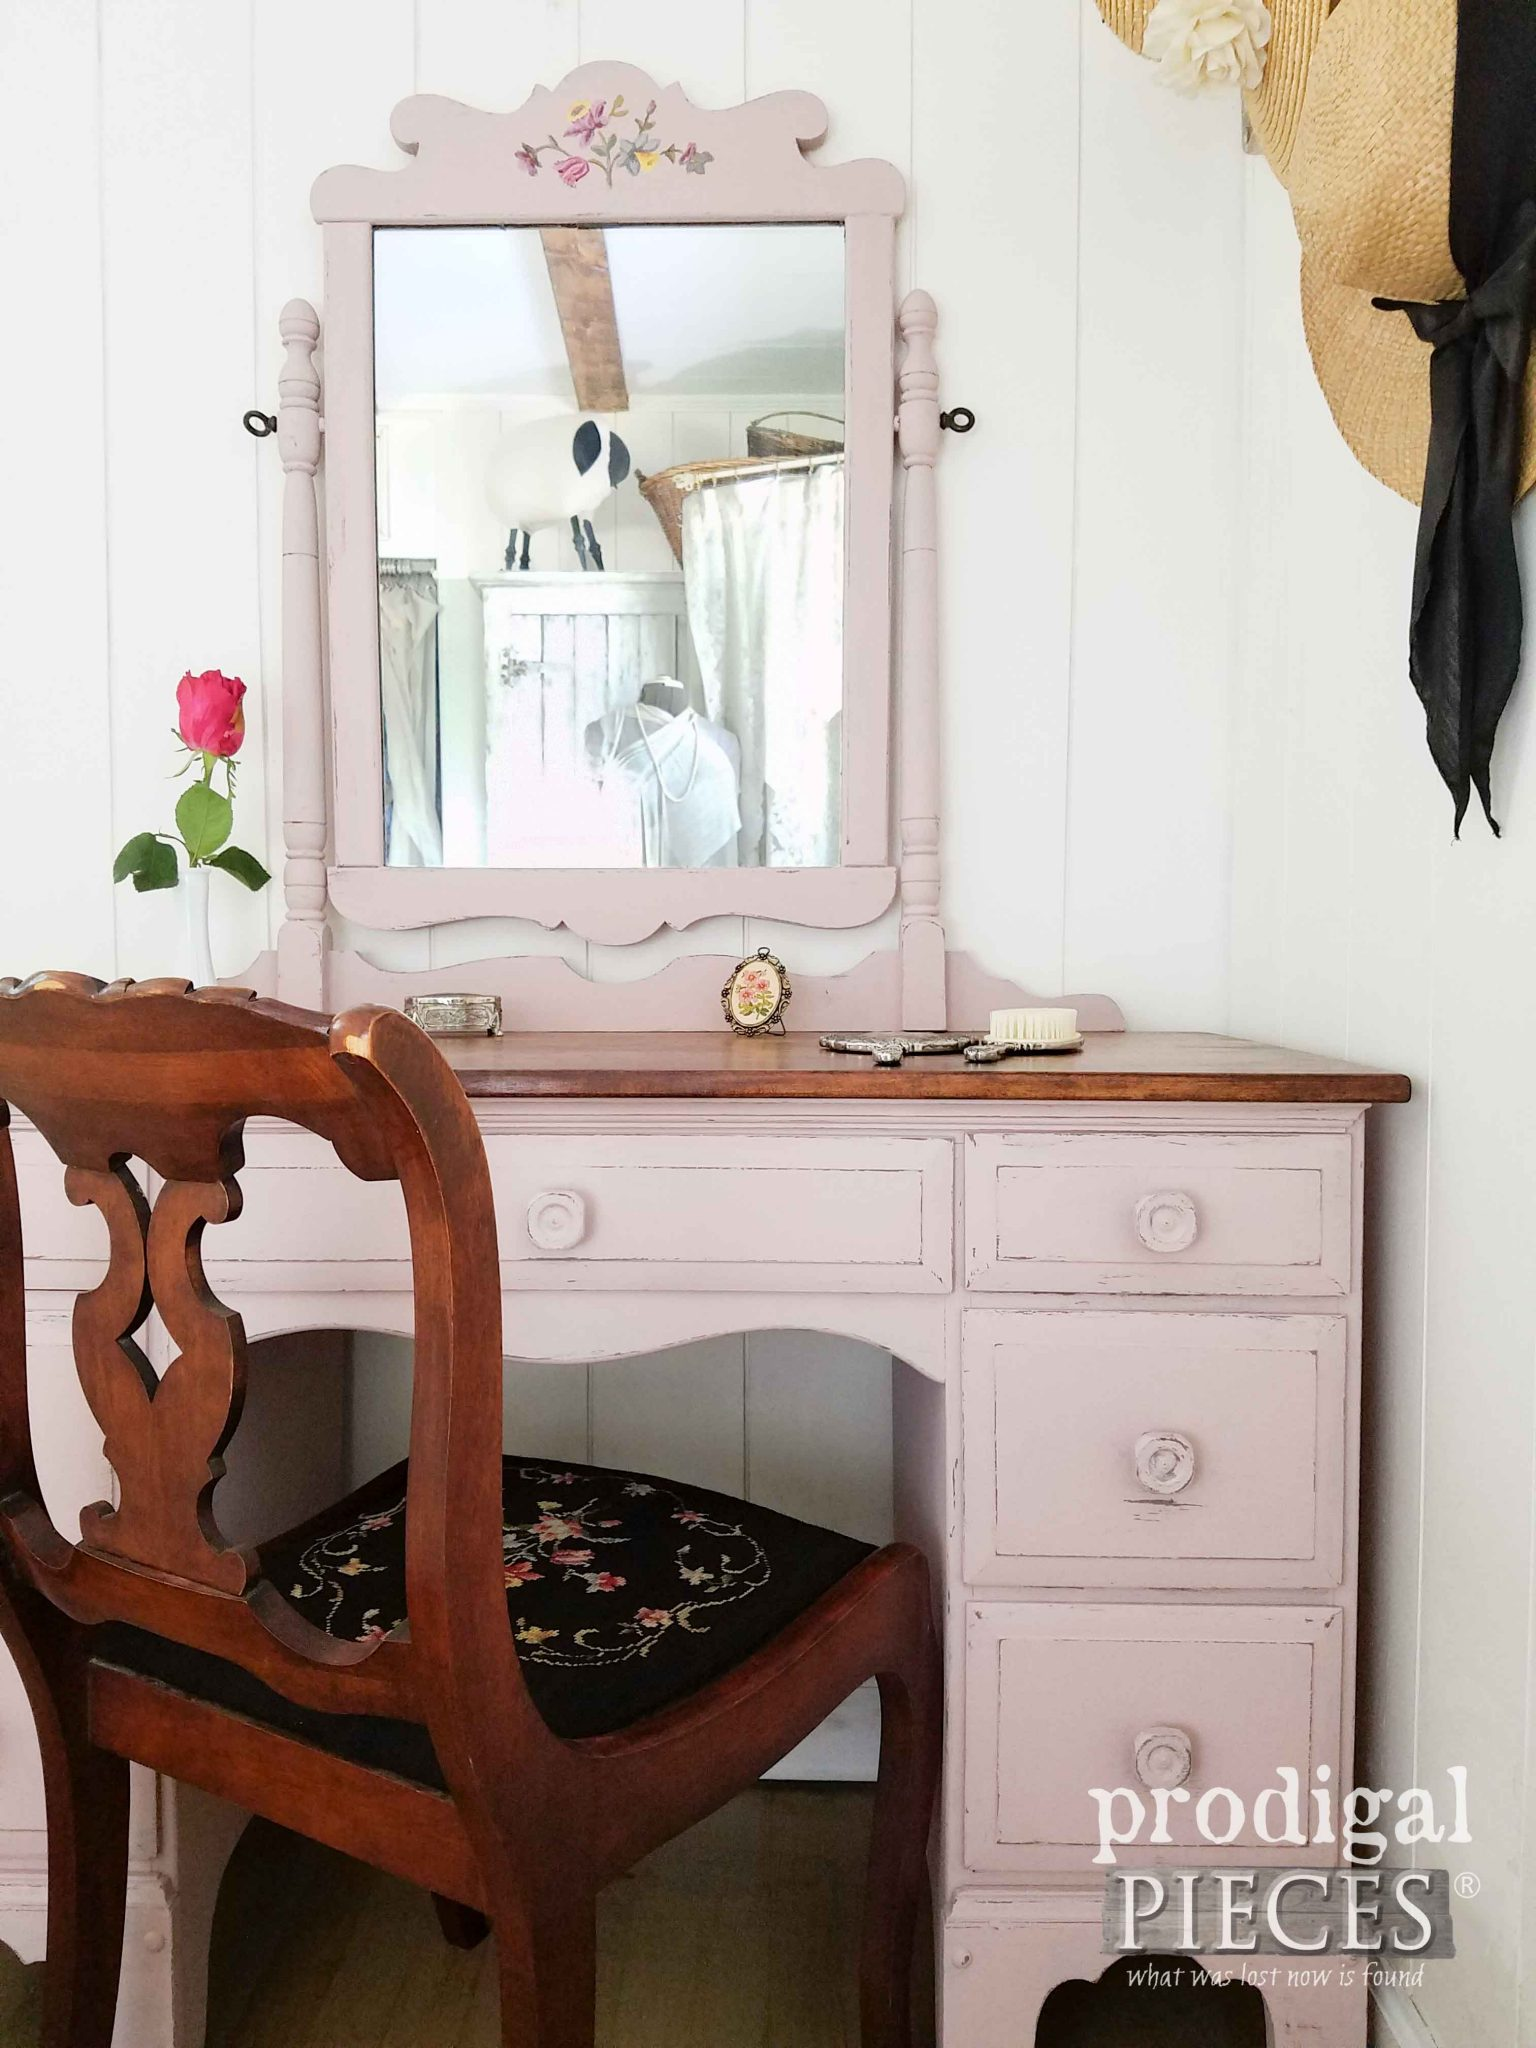 Tea Rose Pink Vintage Vanity with Needlepoint Chair by Prodigal Pieces | prodigalpieces.com